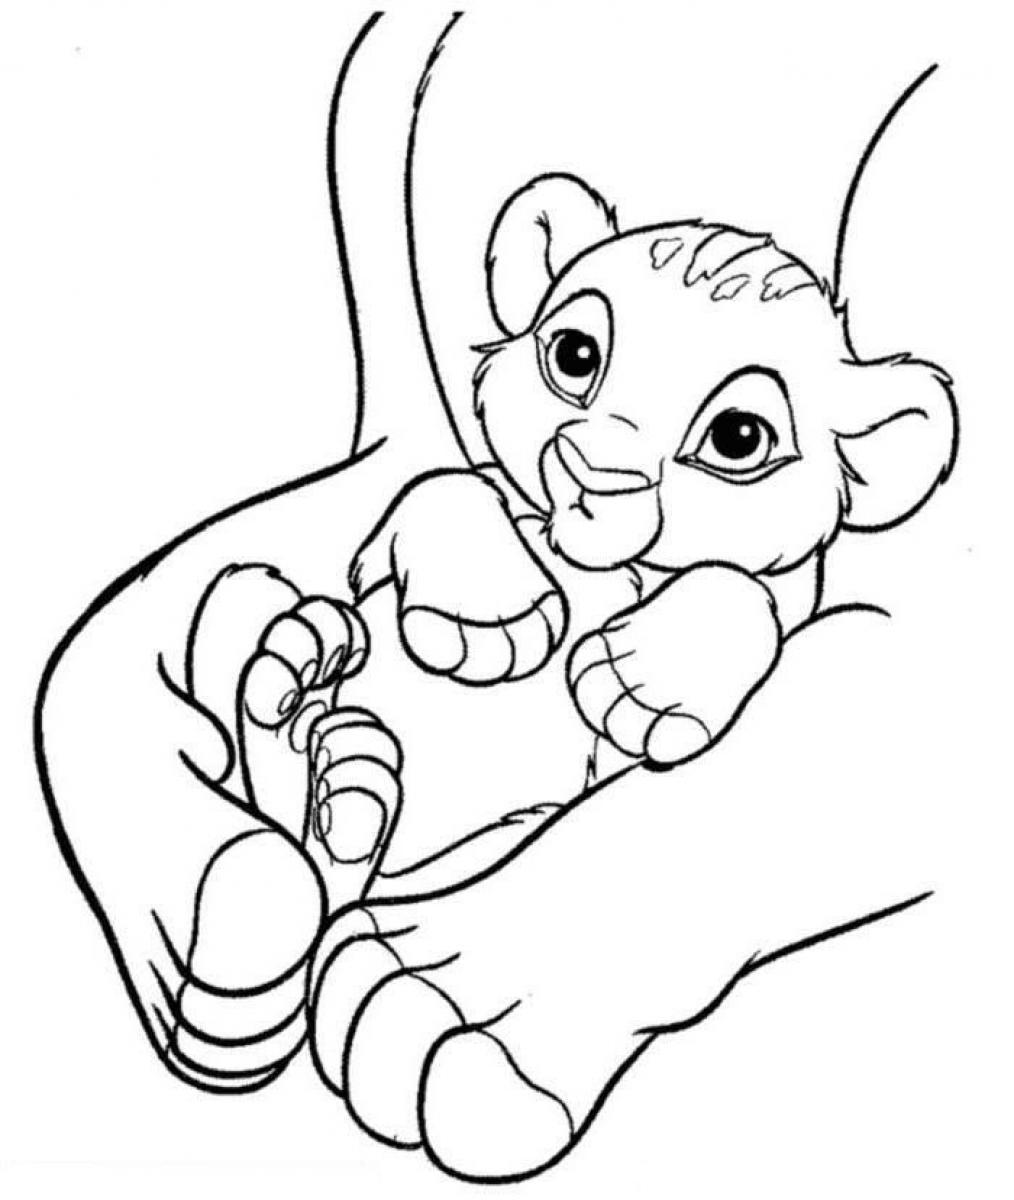 Free Printable Simba Coloring Pages For Kids